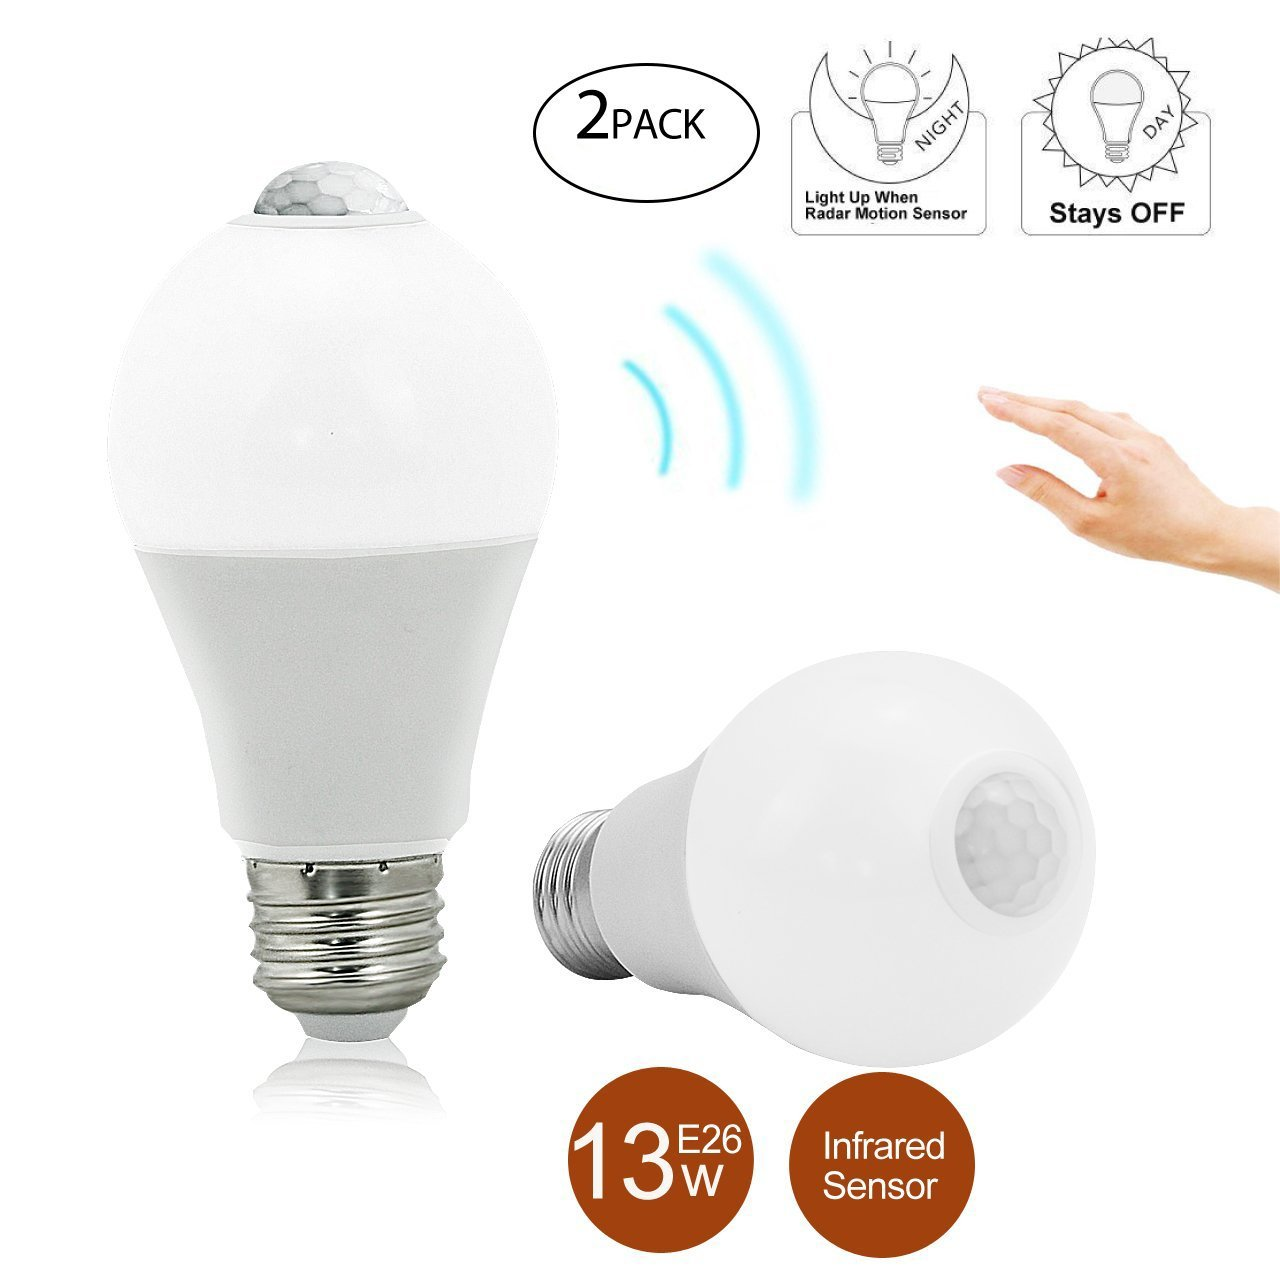 BRTLX PIR Motion Sensor LED Bulb A19 13W E26 3000K Warm White Auto On/Off Night Lights for Stairs Garage Corridor Pack of 2